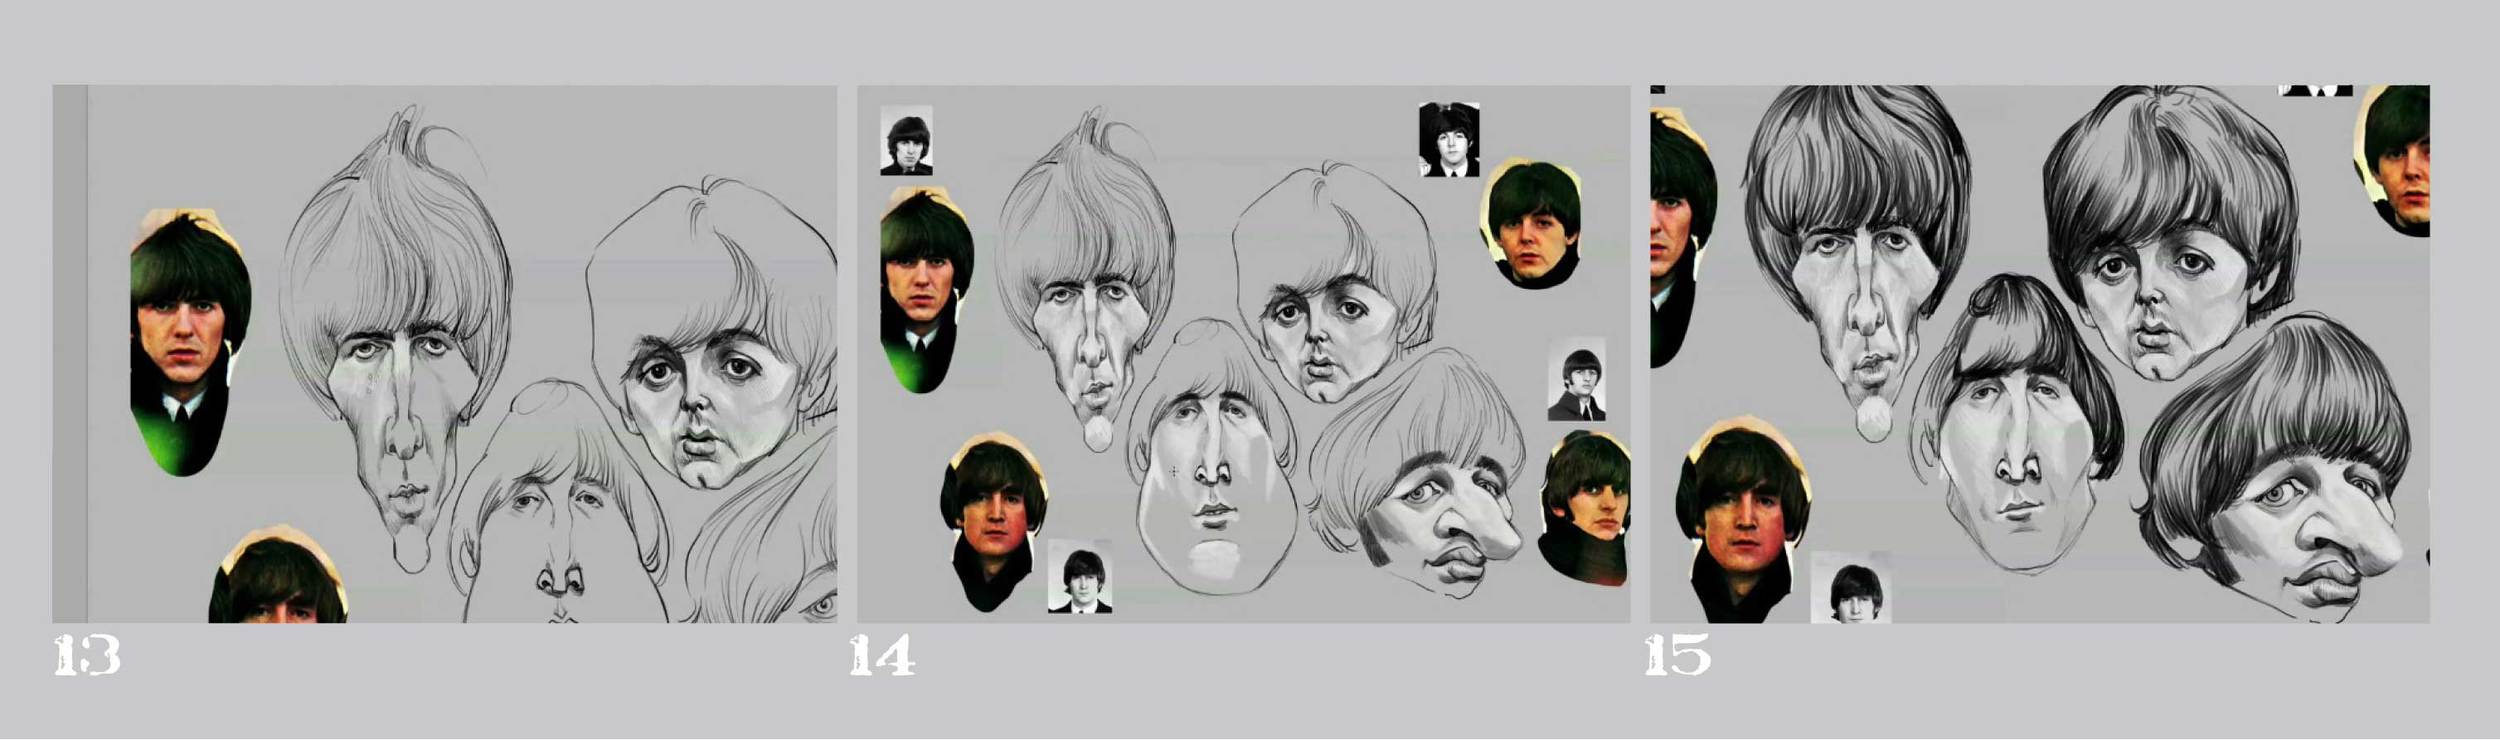 Beatles-Tut-05.jpg